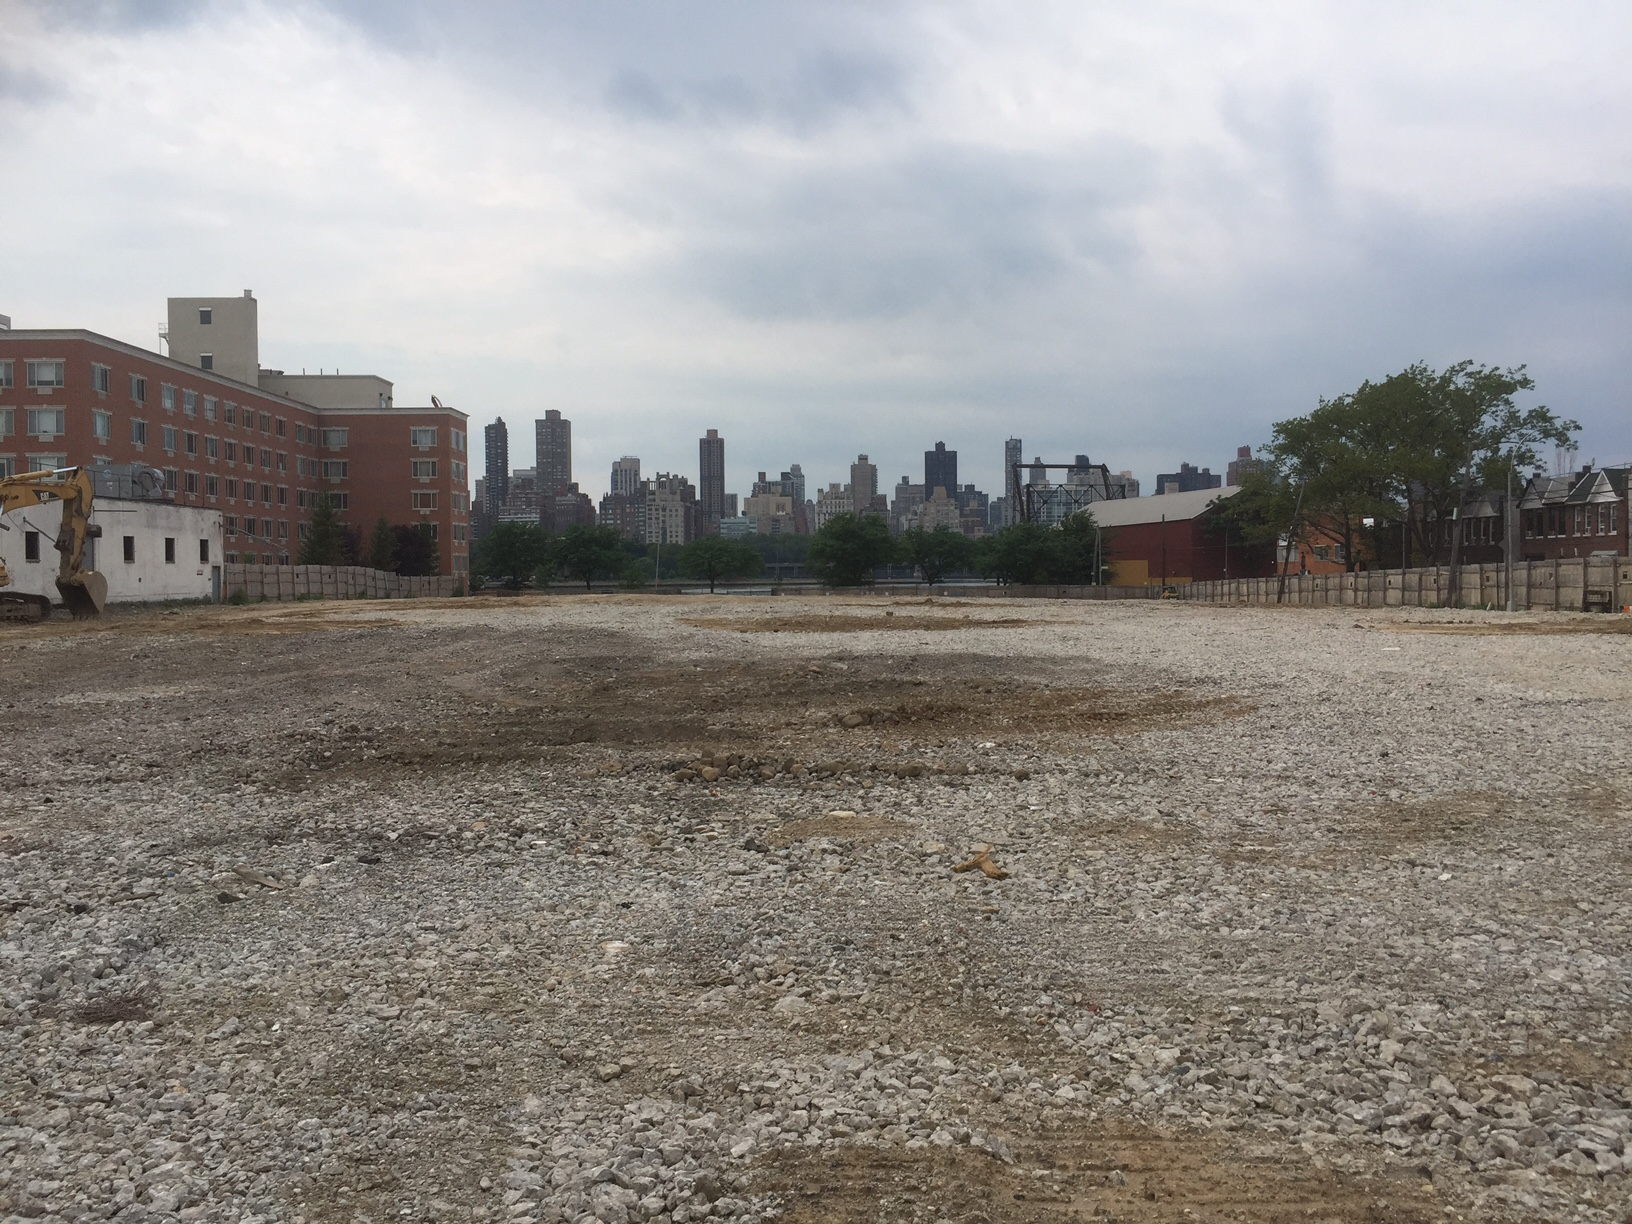 A Large Residential Development Planned for 30-80 12th Street